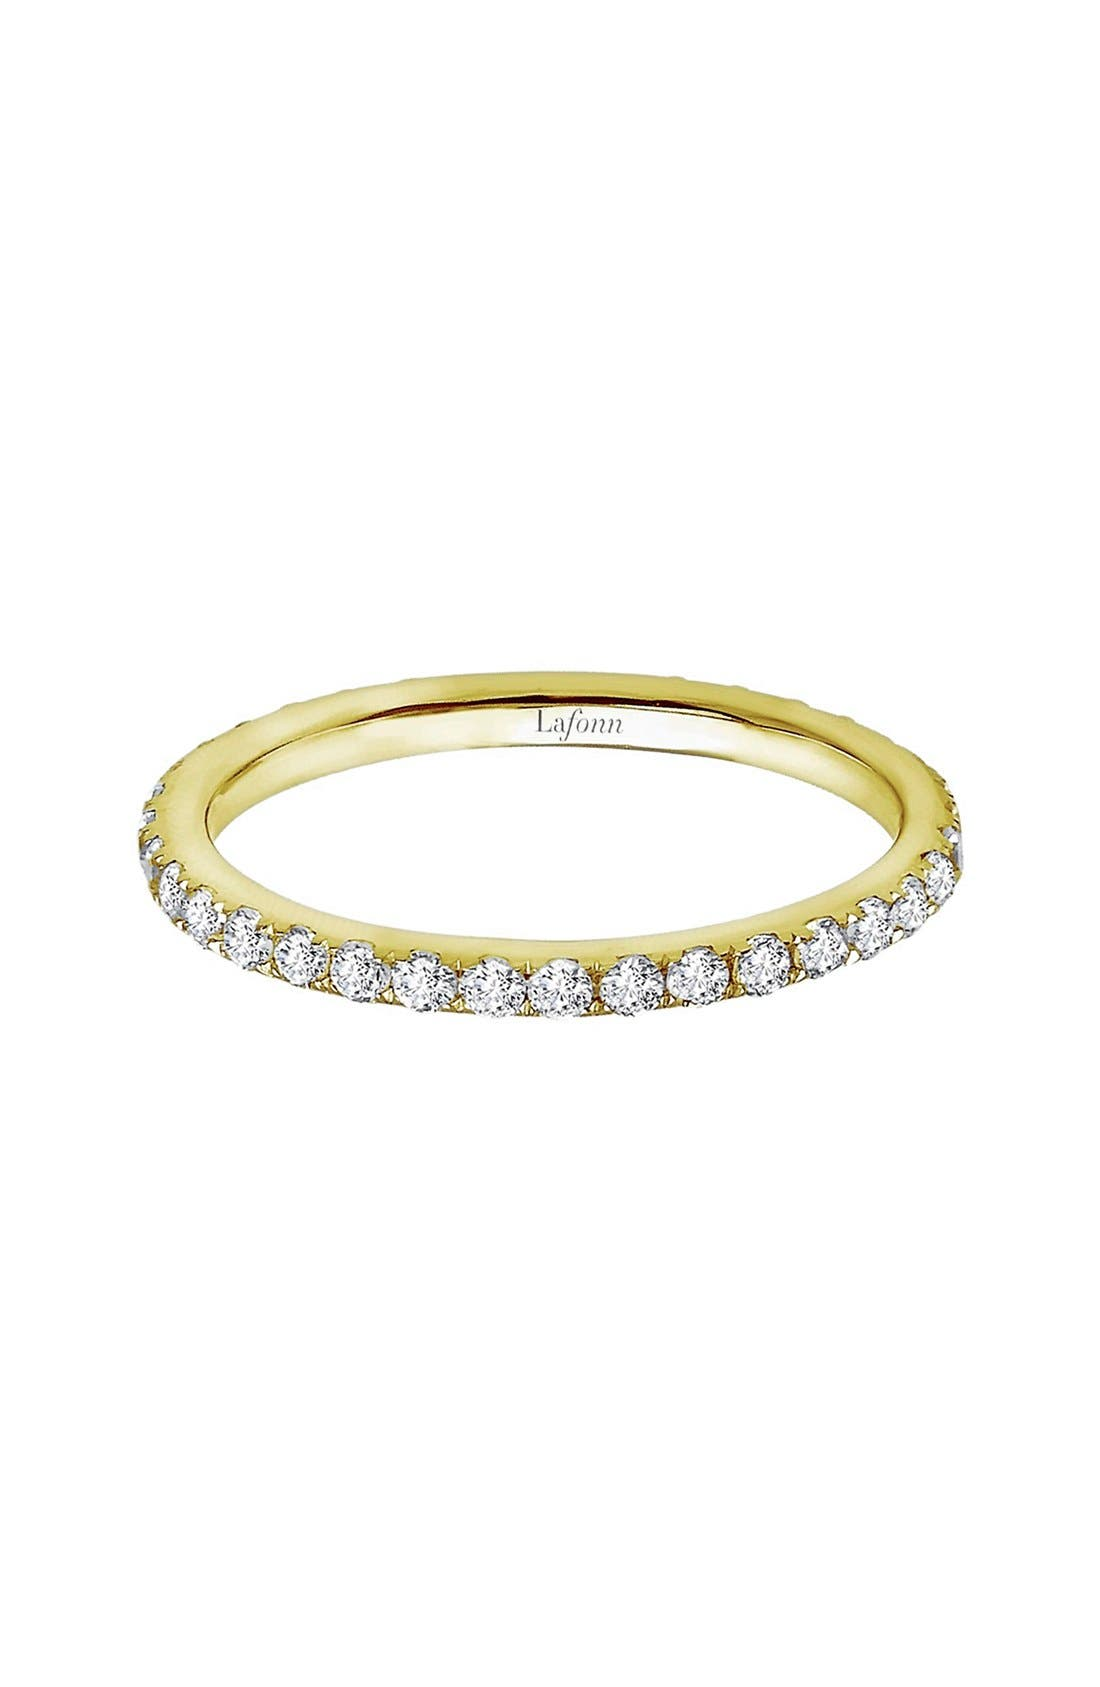 'Lassaire' Eternity Band,                             Main thumbnail 1, color,                             710